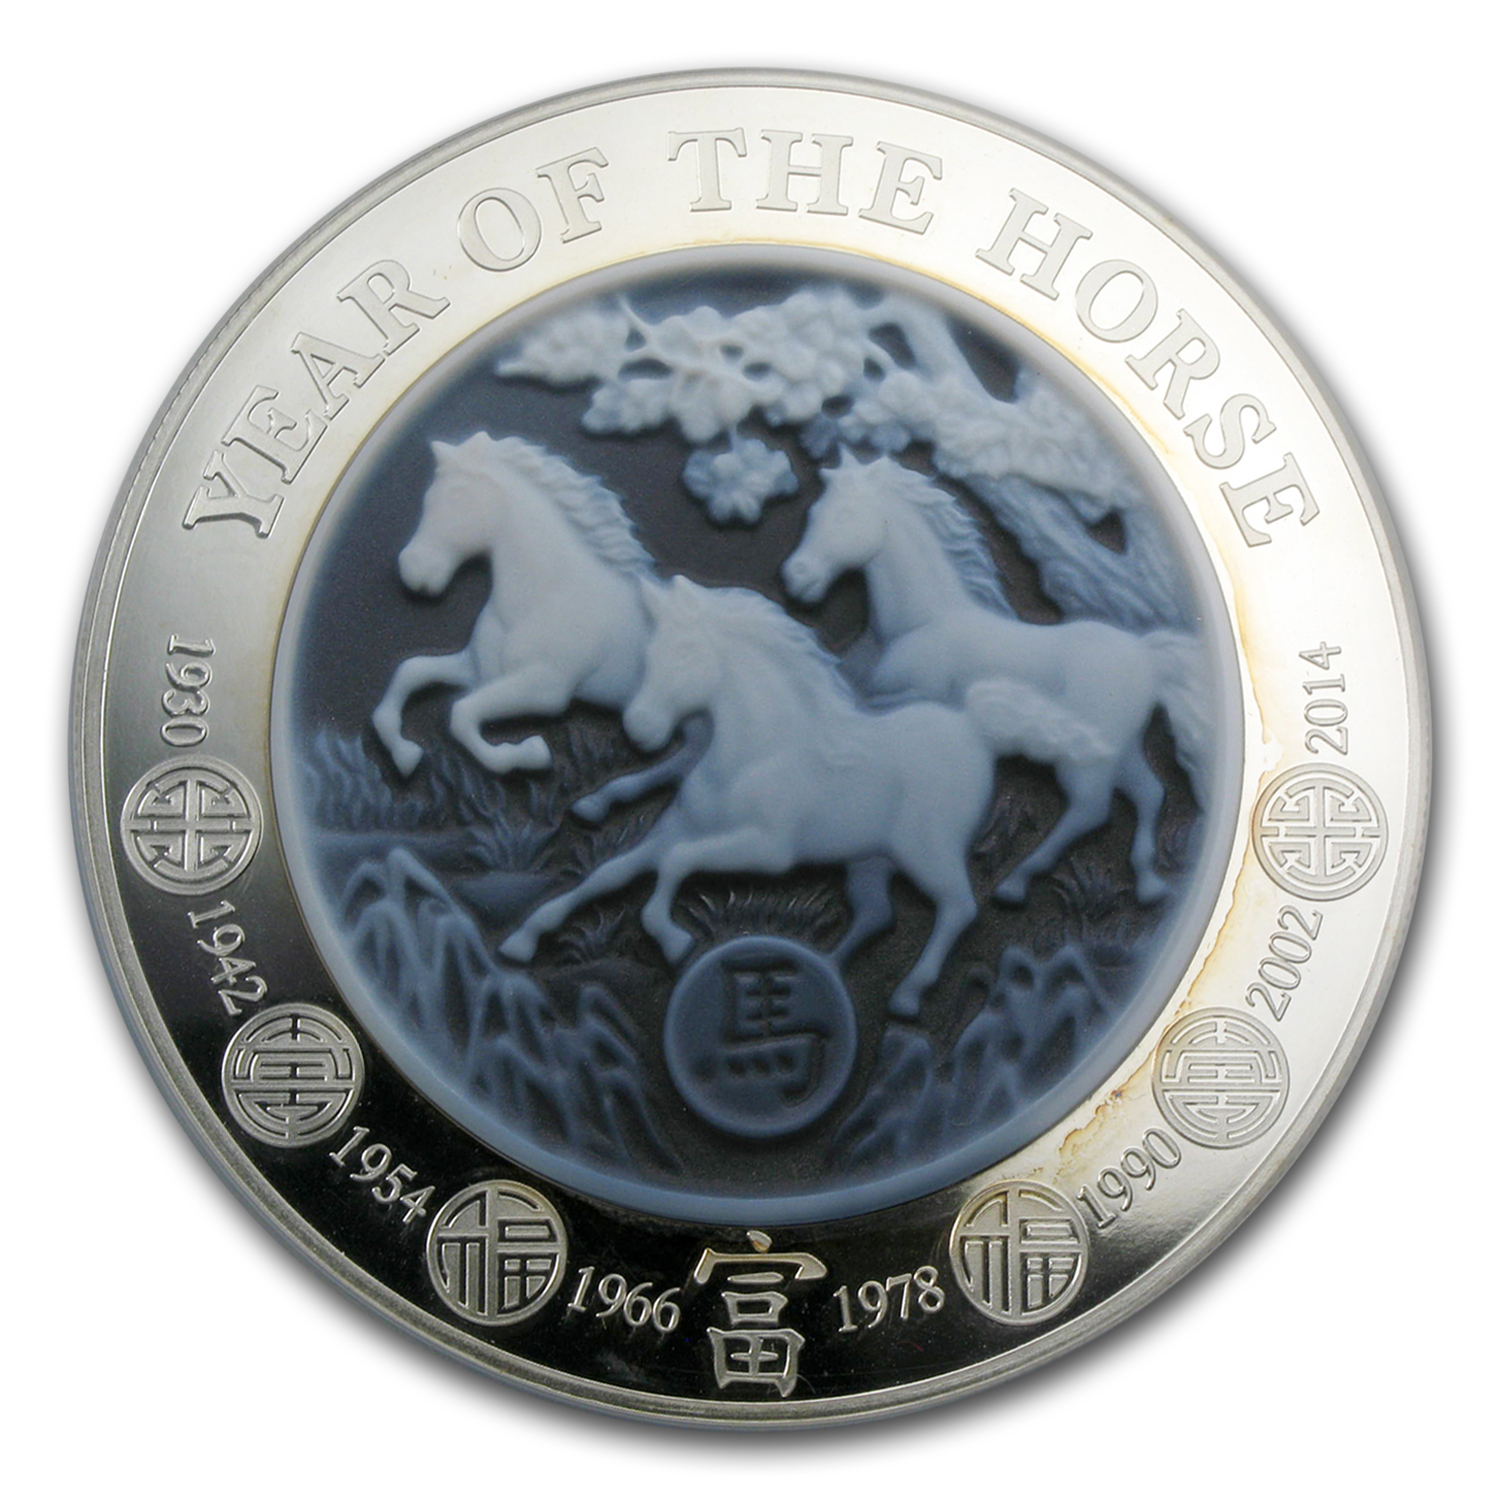 Rwanda 2014 3 oz Silver Proof Lunar Year of the Horse - Agate